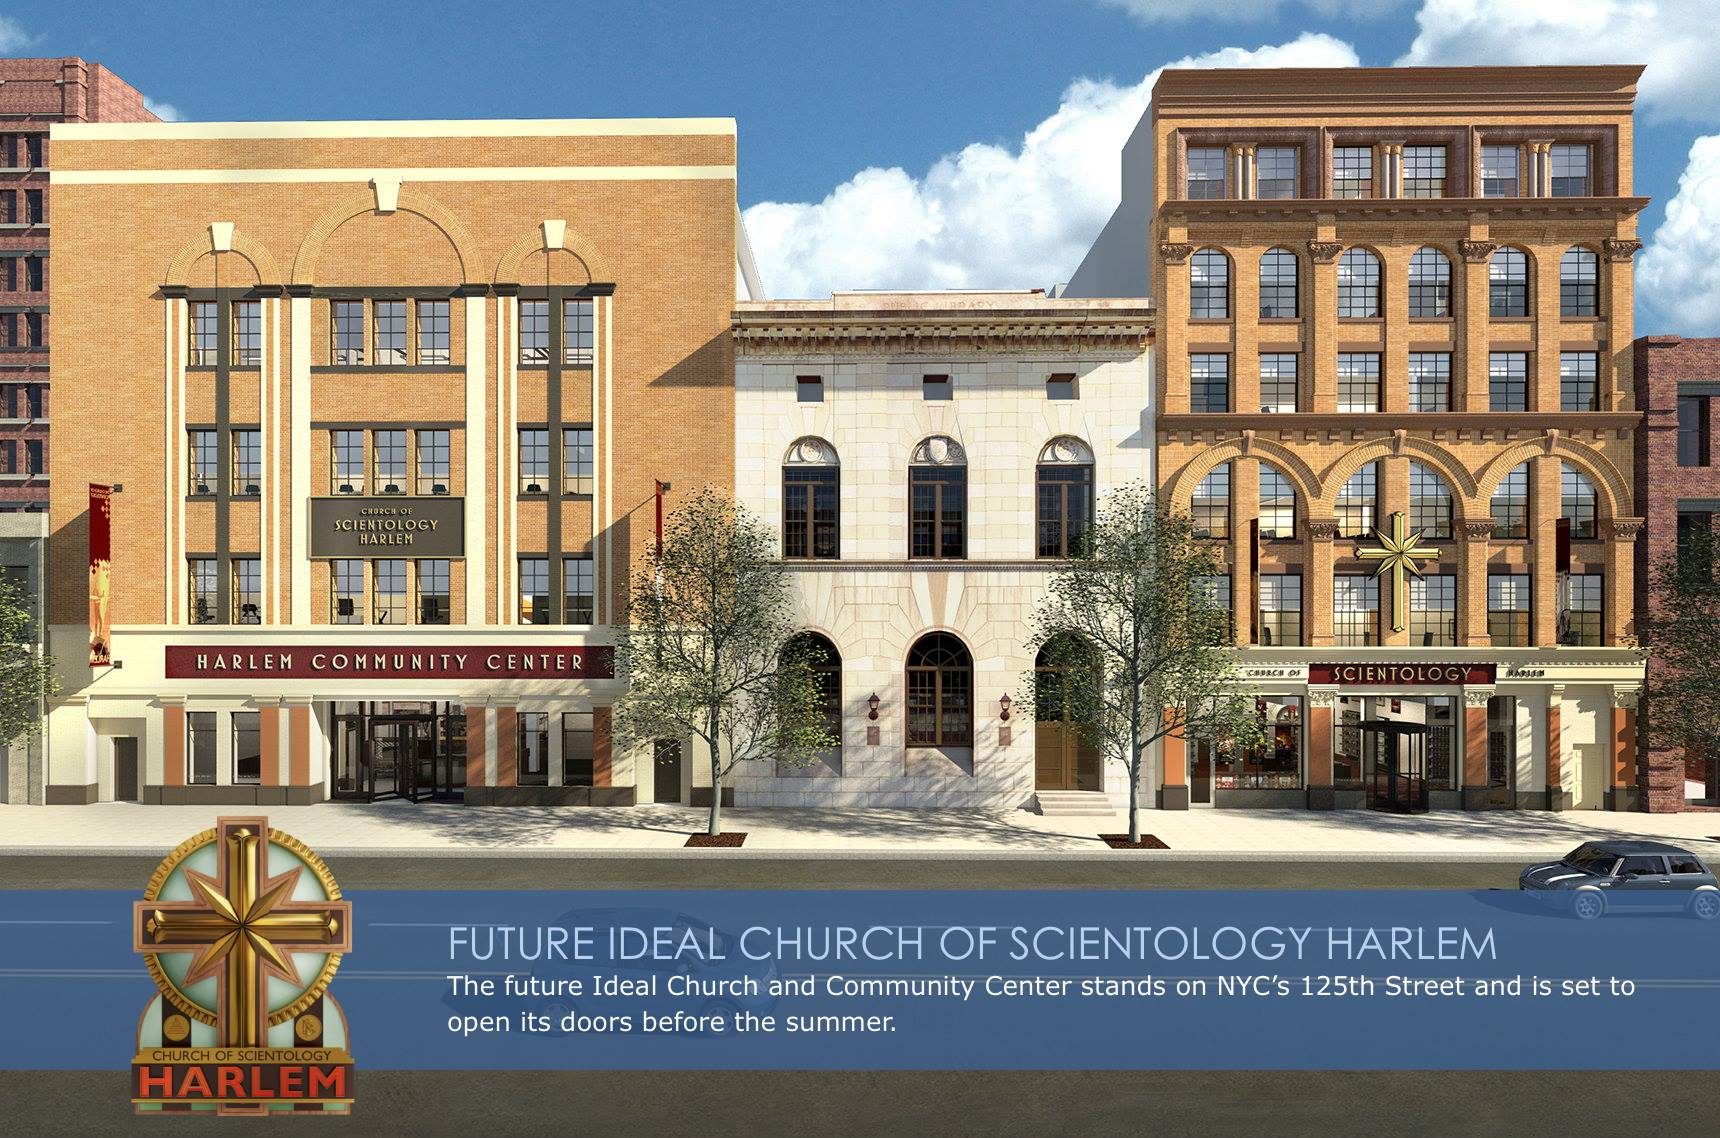 Future Church of Scientology Harlem | Church of Scientology